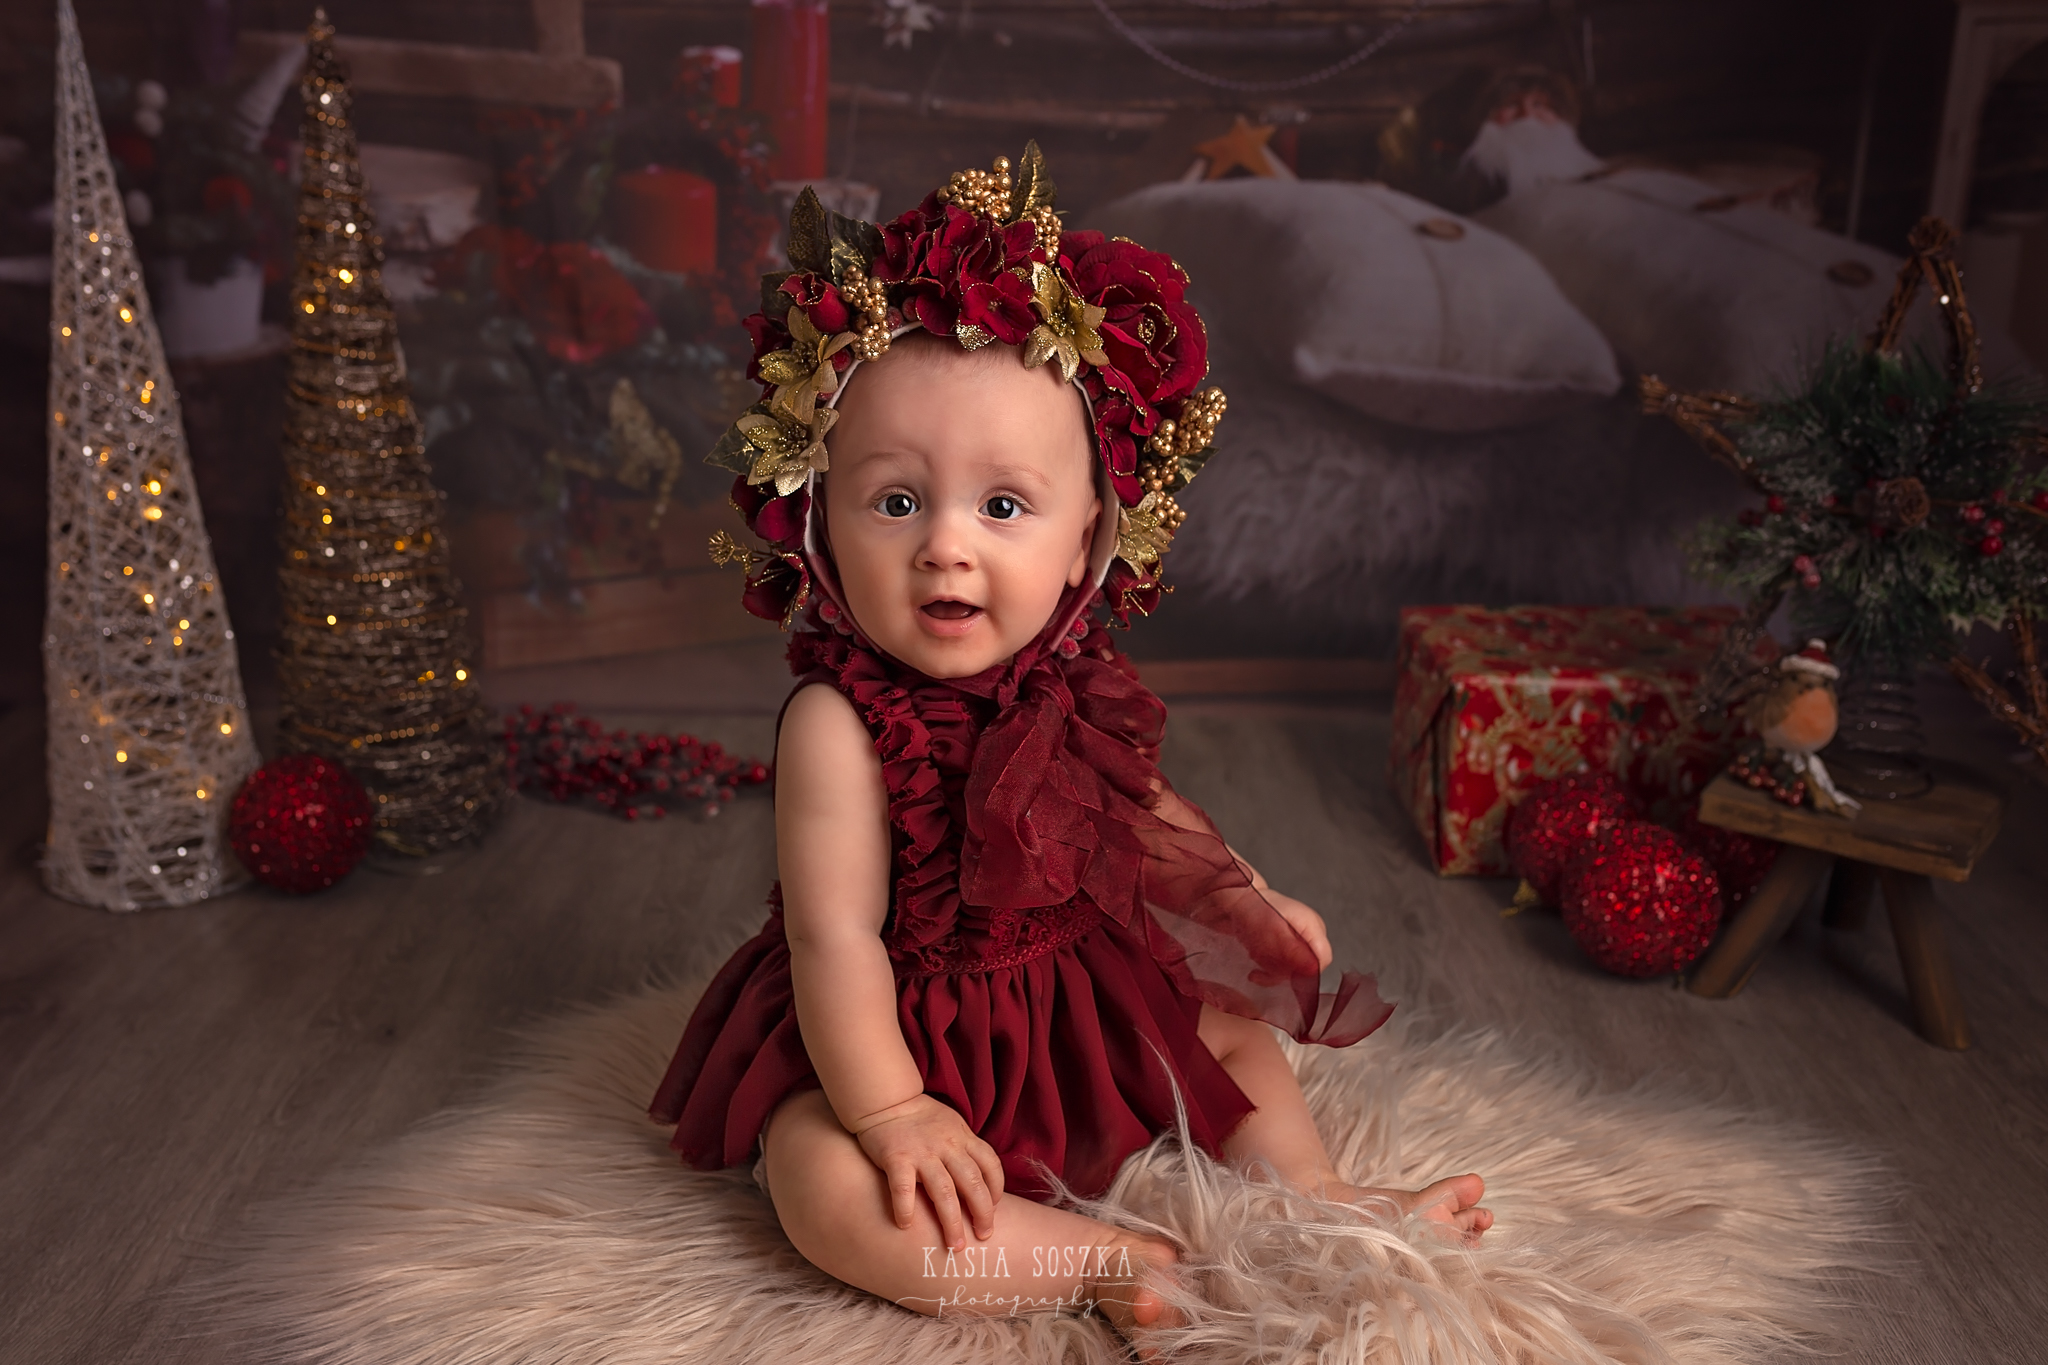 Child photographer Leeds, York, Bradford, Harrogate. Christmas Mini Sessions 2018 Leeds: cute baby girl in Christmas outfit